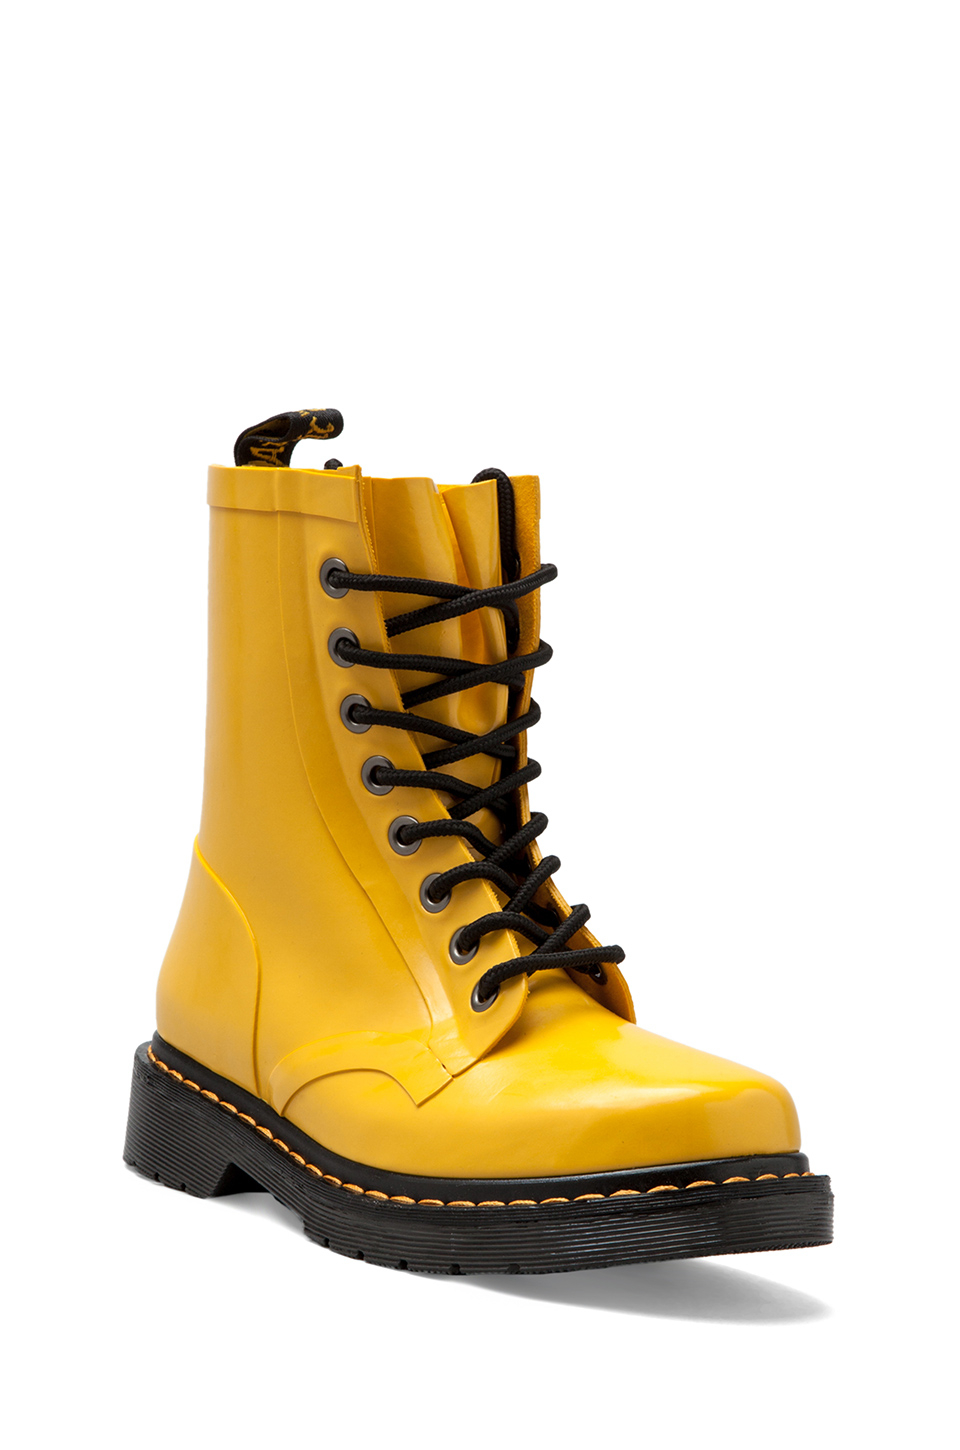 e985160e4 Dr. Martens Drench 8eye Rain Boot in Yellow in Yellow - Lyst